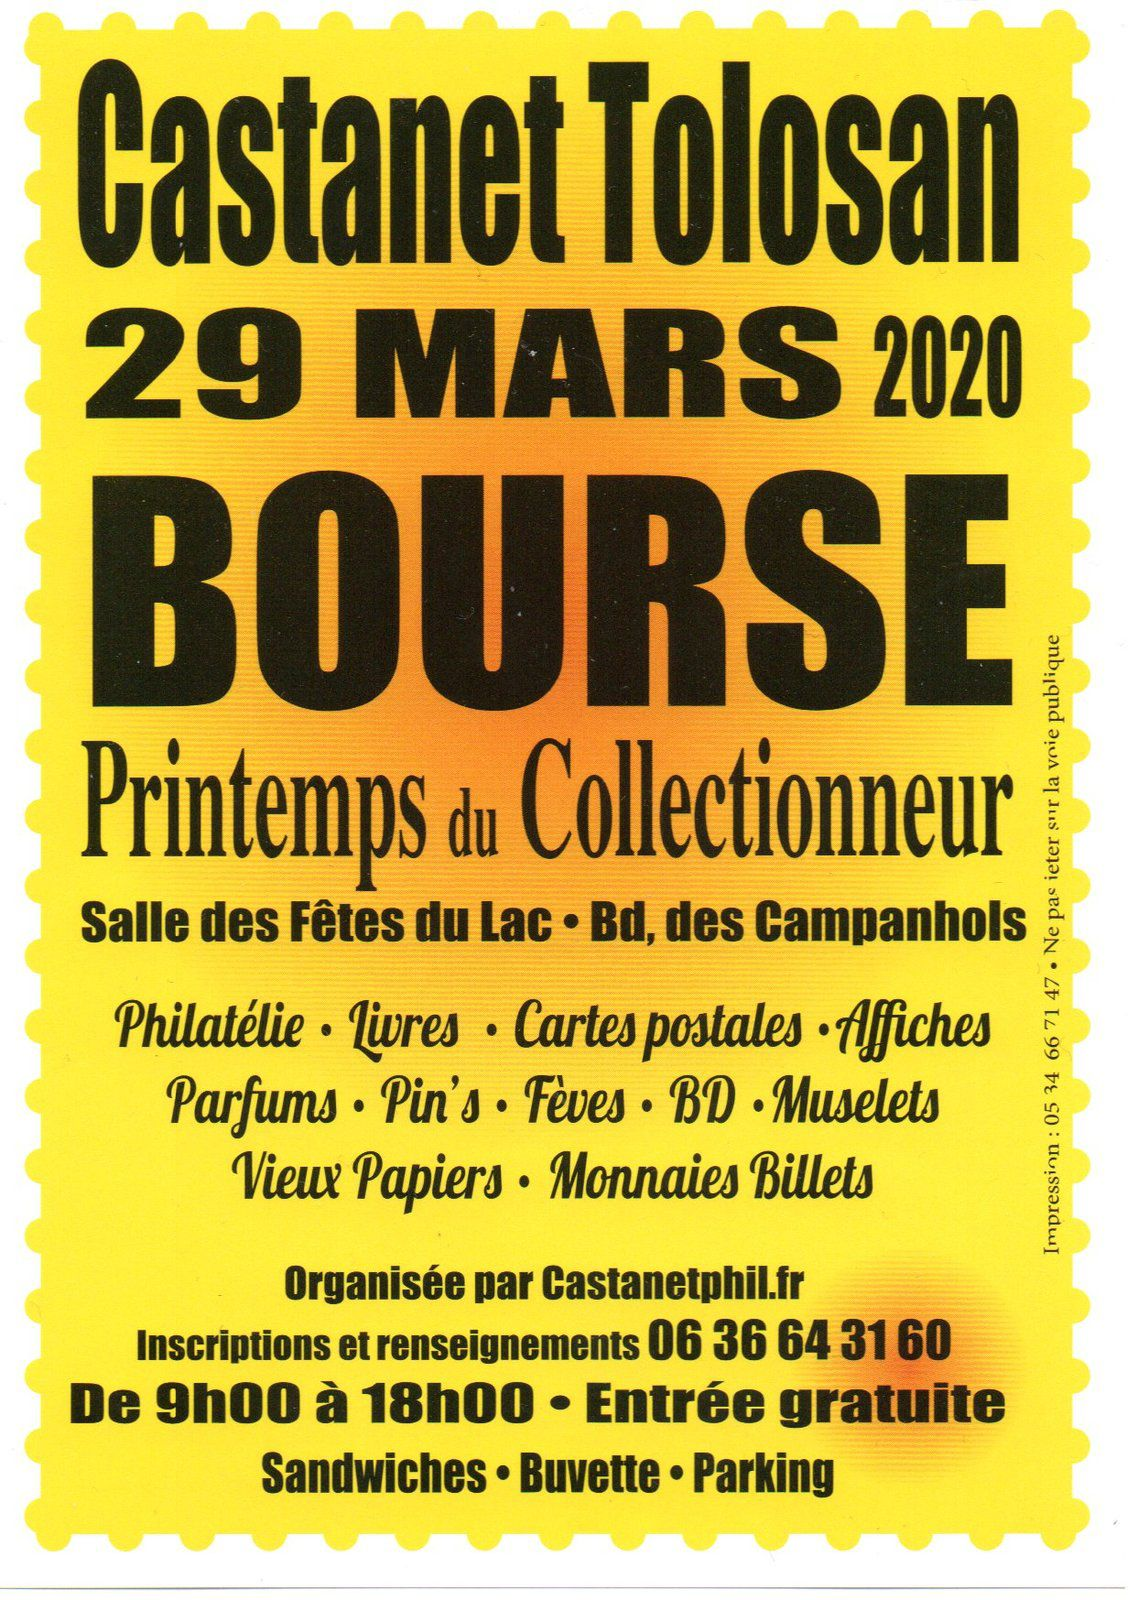 Bourse   Printemps du Collectionneur Castanet-Tolosan 31320